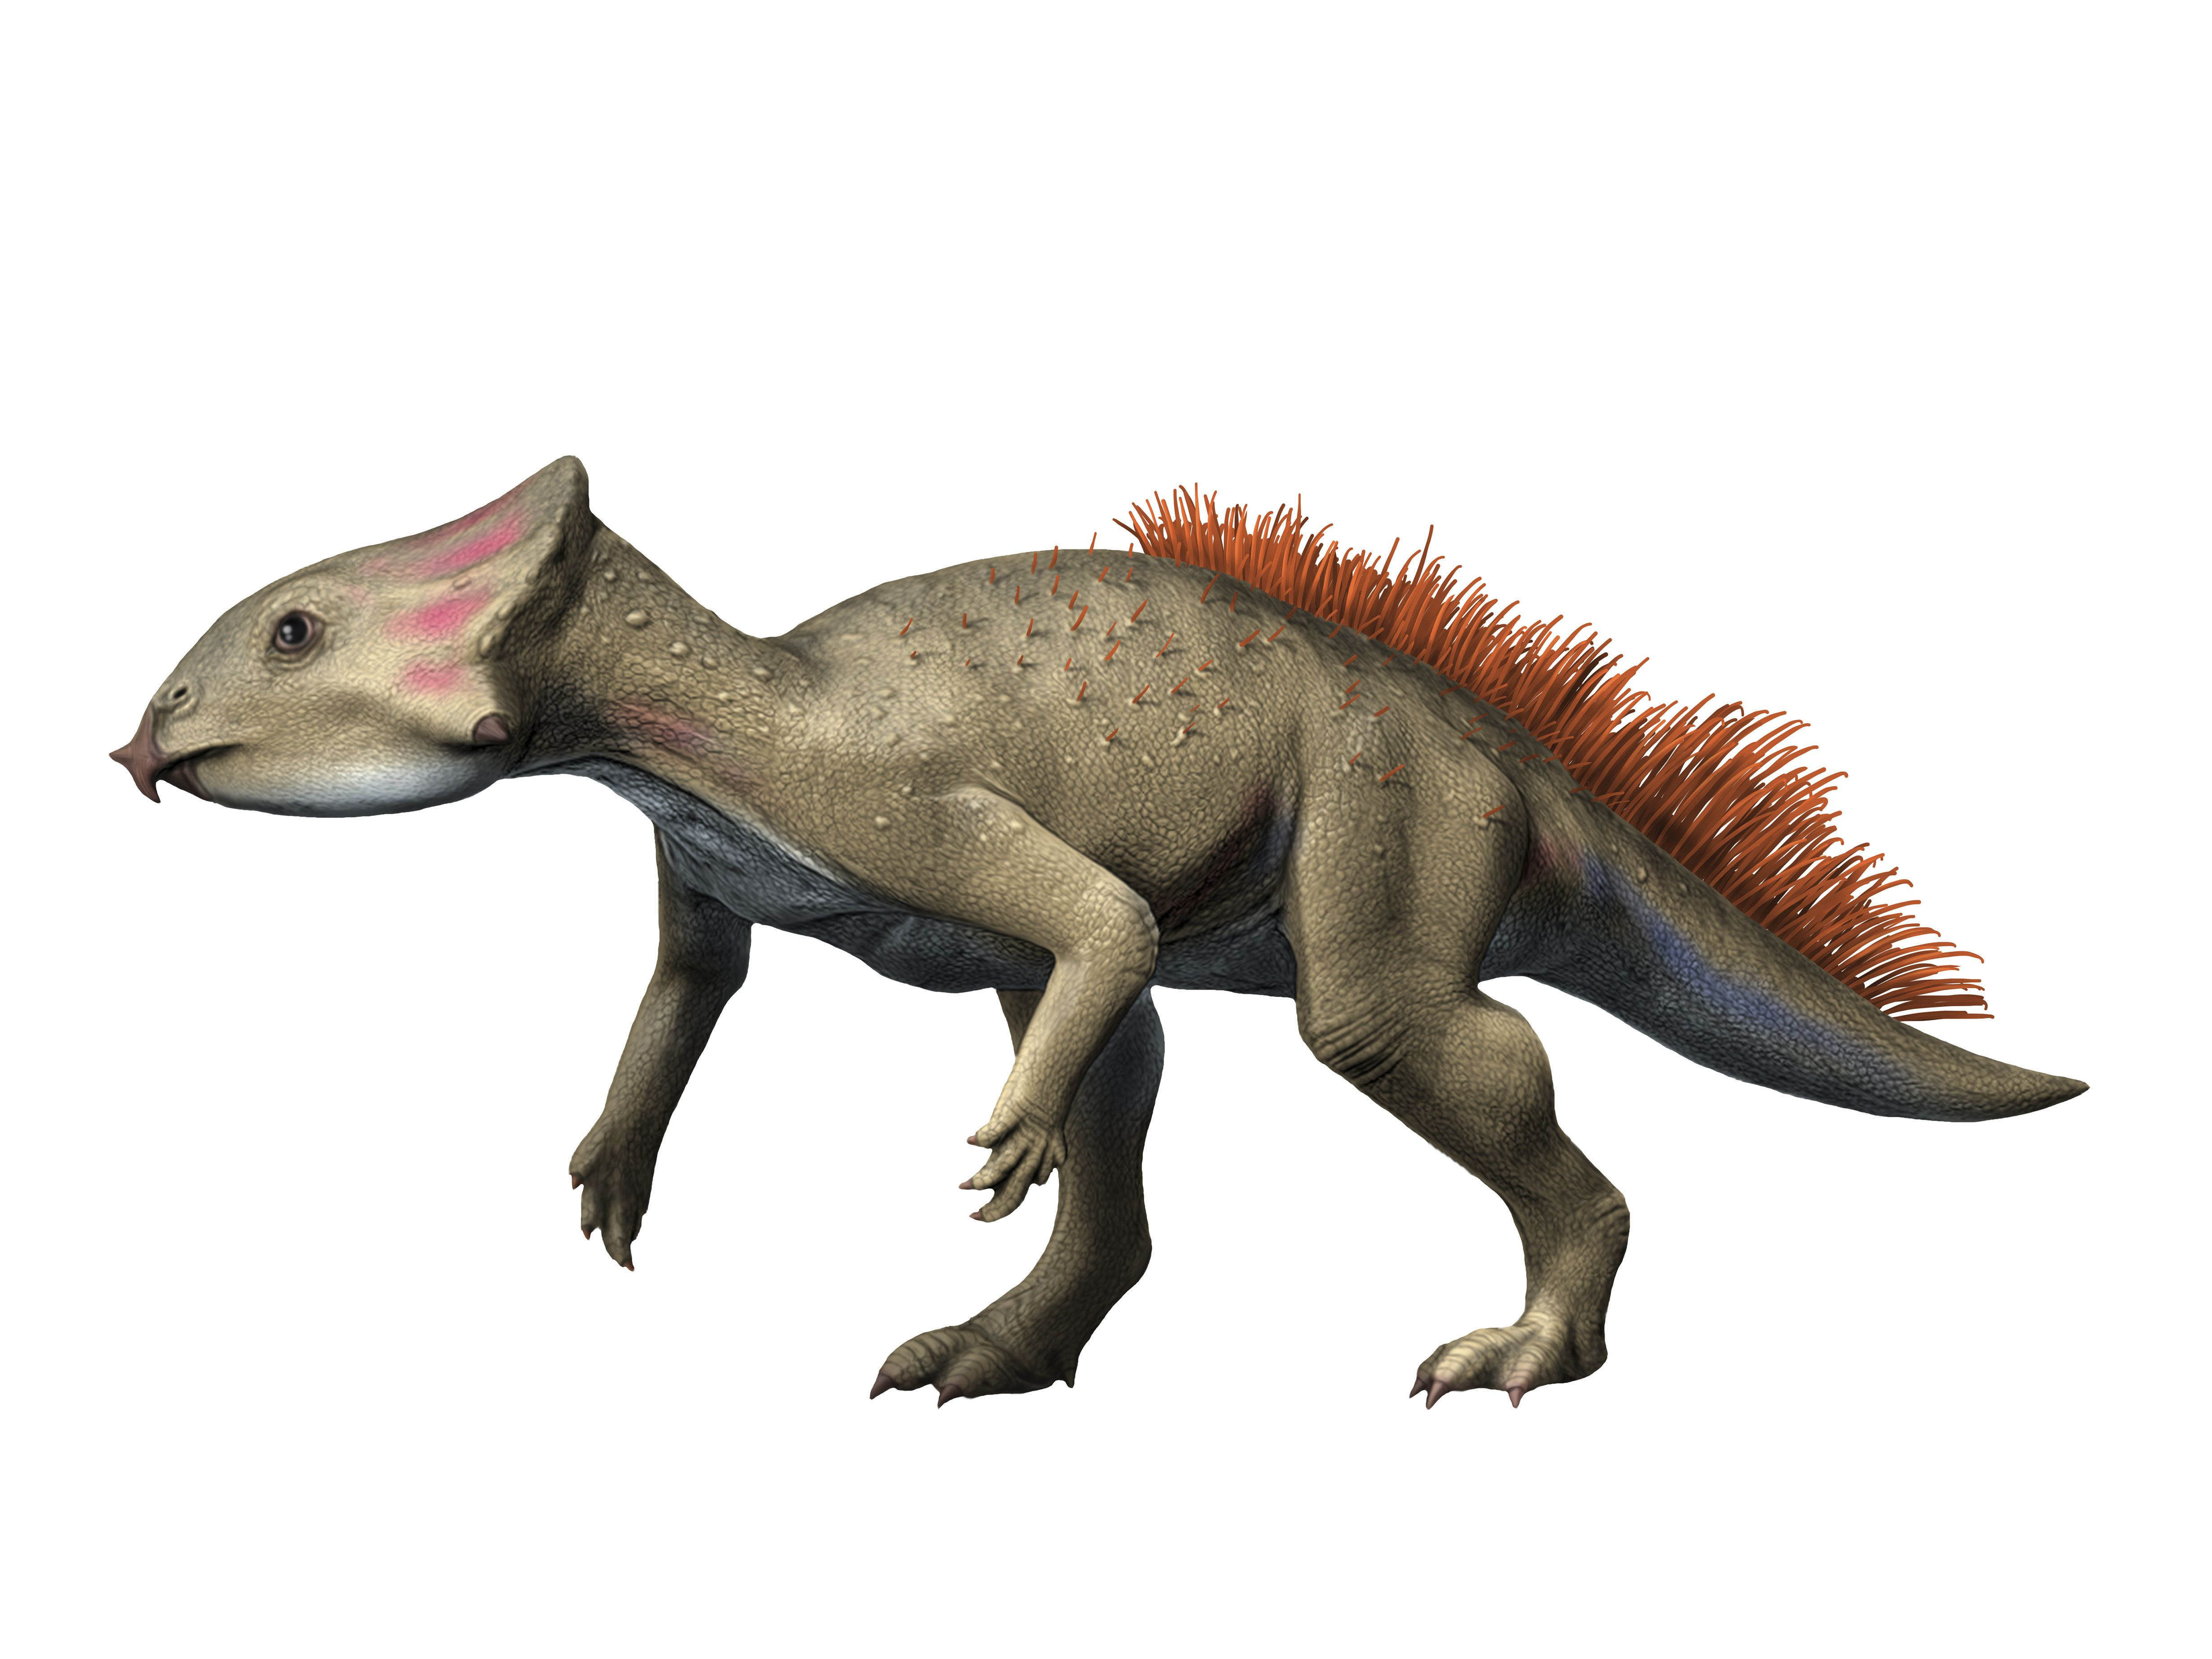 Aquilops is a ceratopsiam from the Early Cretaceous period of Montana.